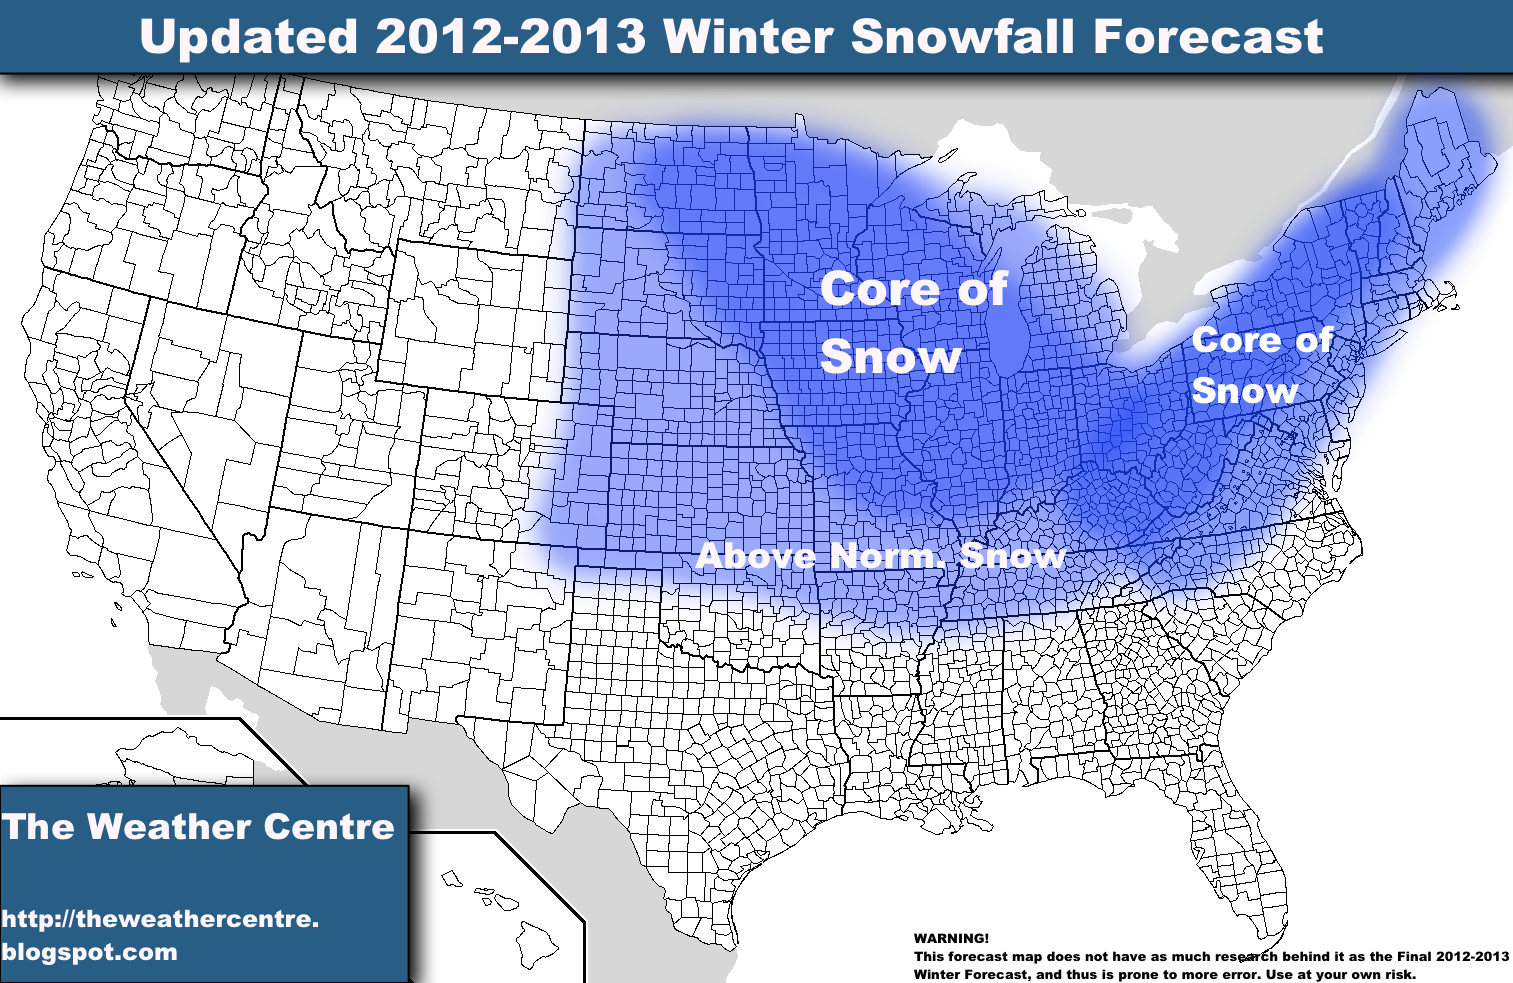 is an updated forecast of what i am expecting in terms of snowfall